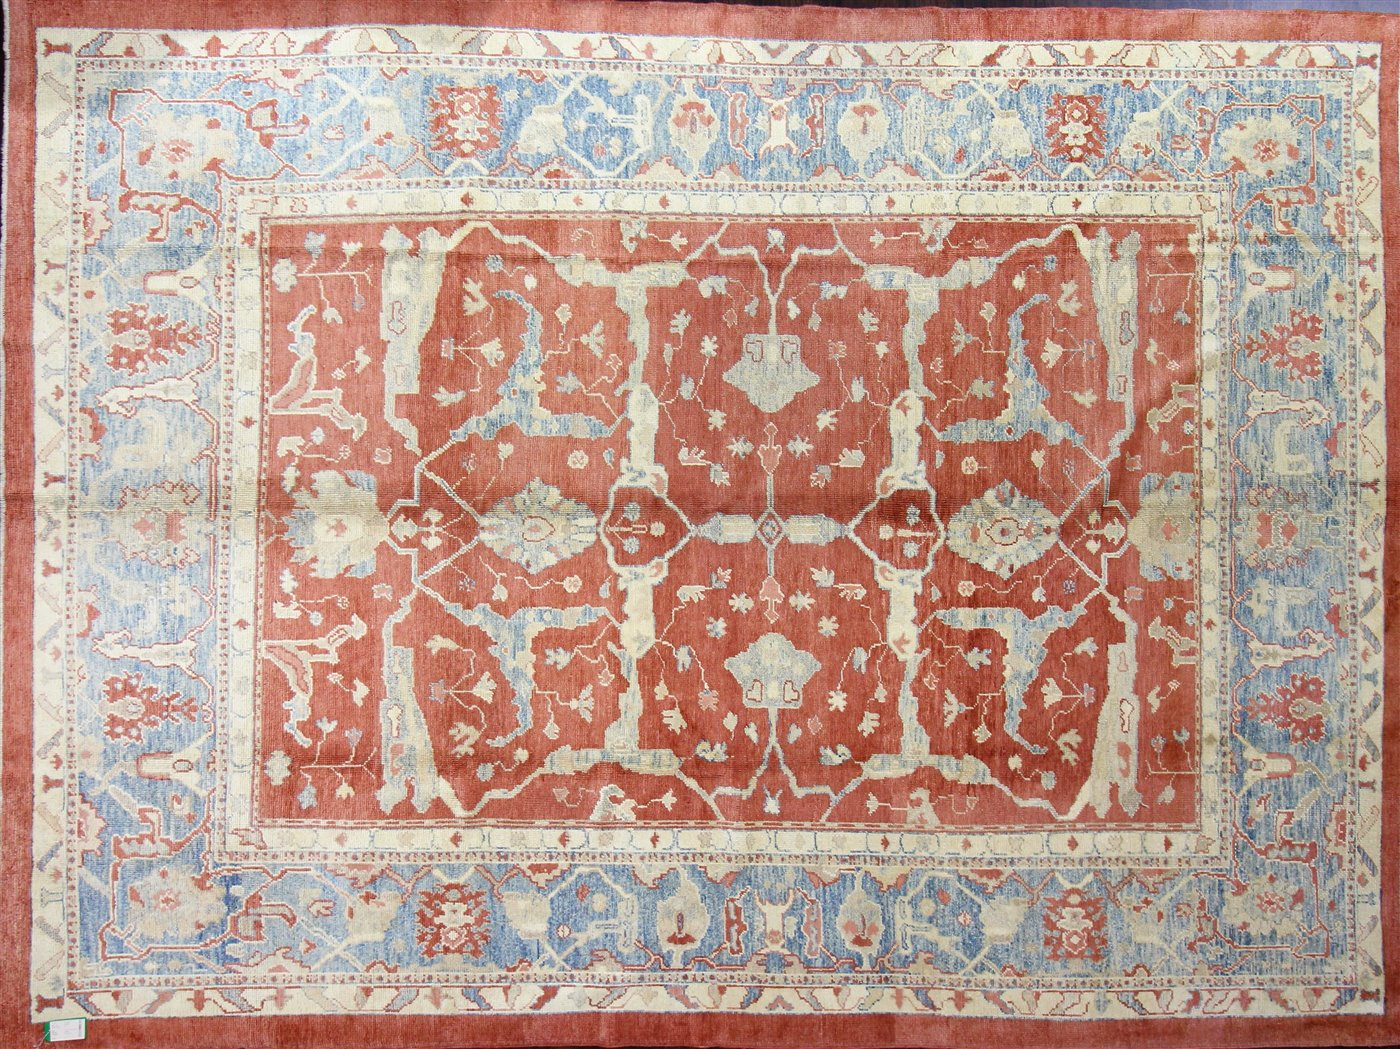 OUSHAK - WOOL/WOOL - 14,00x10,05=145,83 ft²